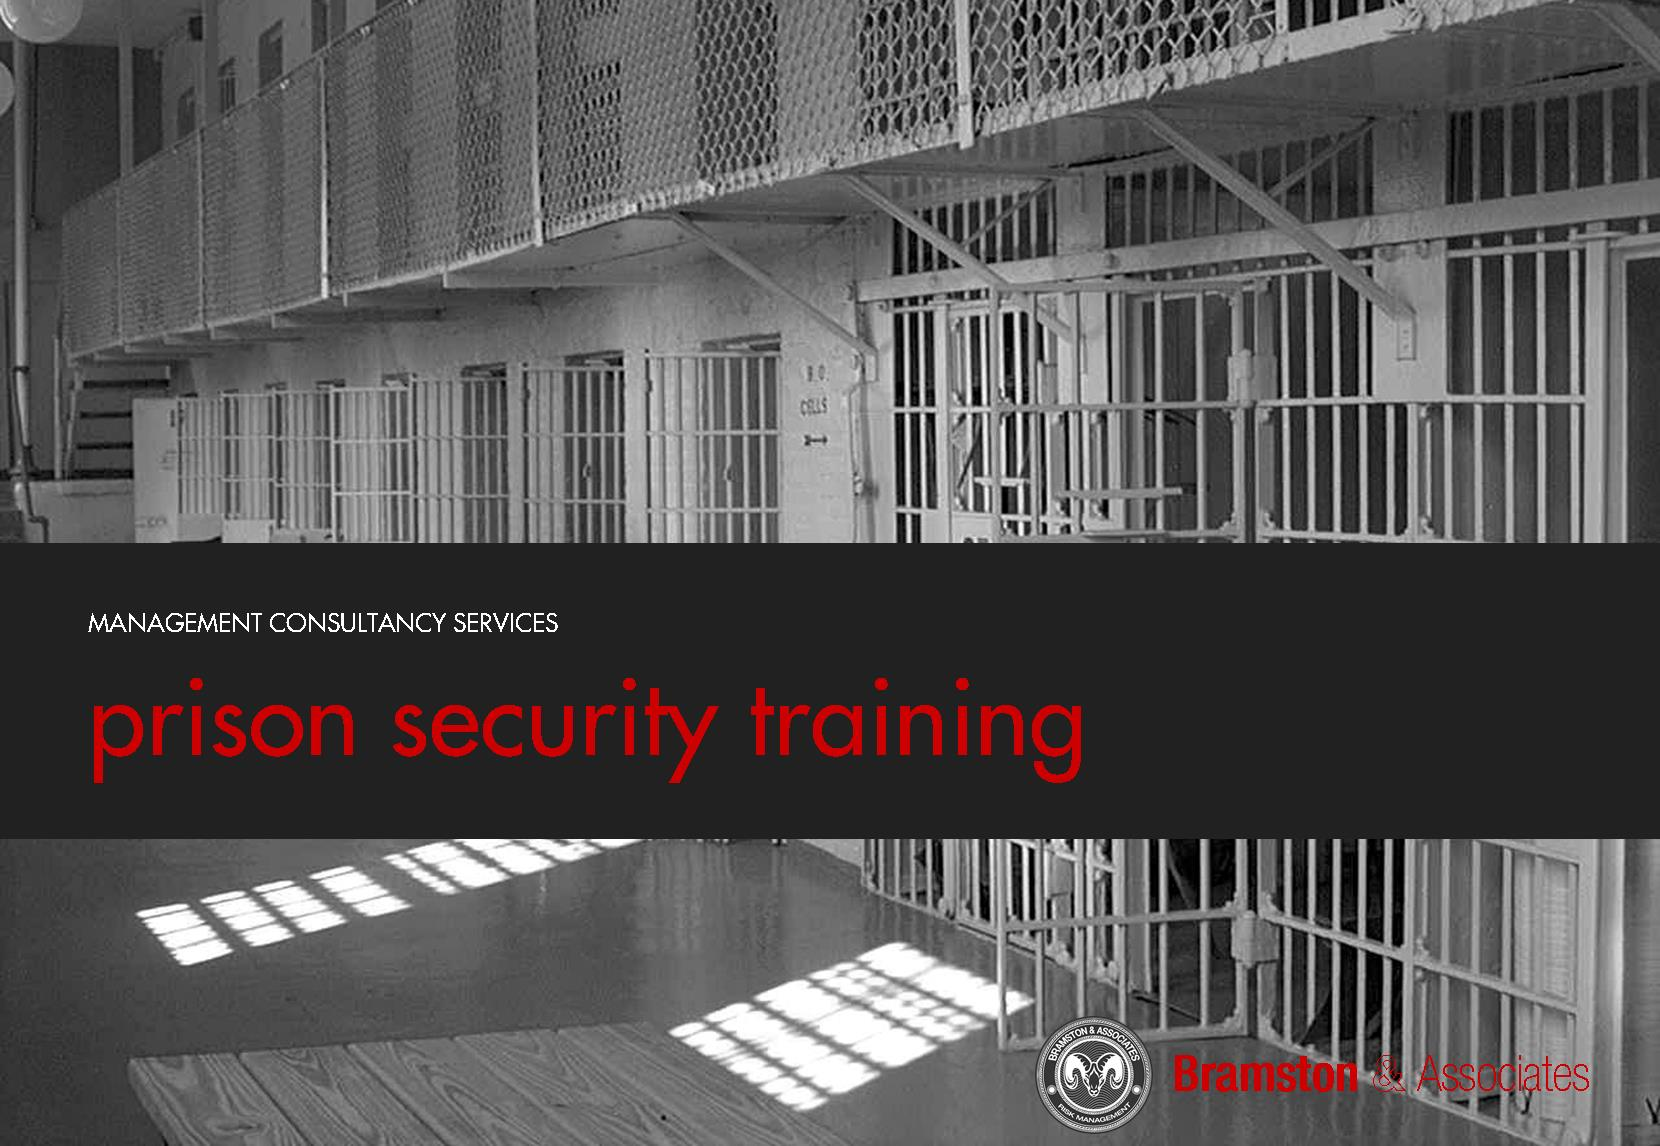 Training for prison officers